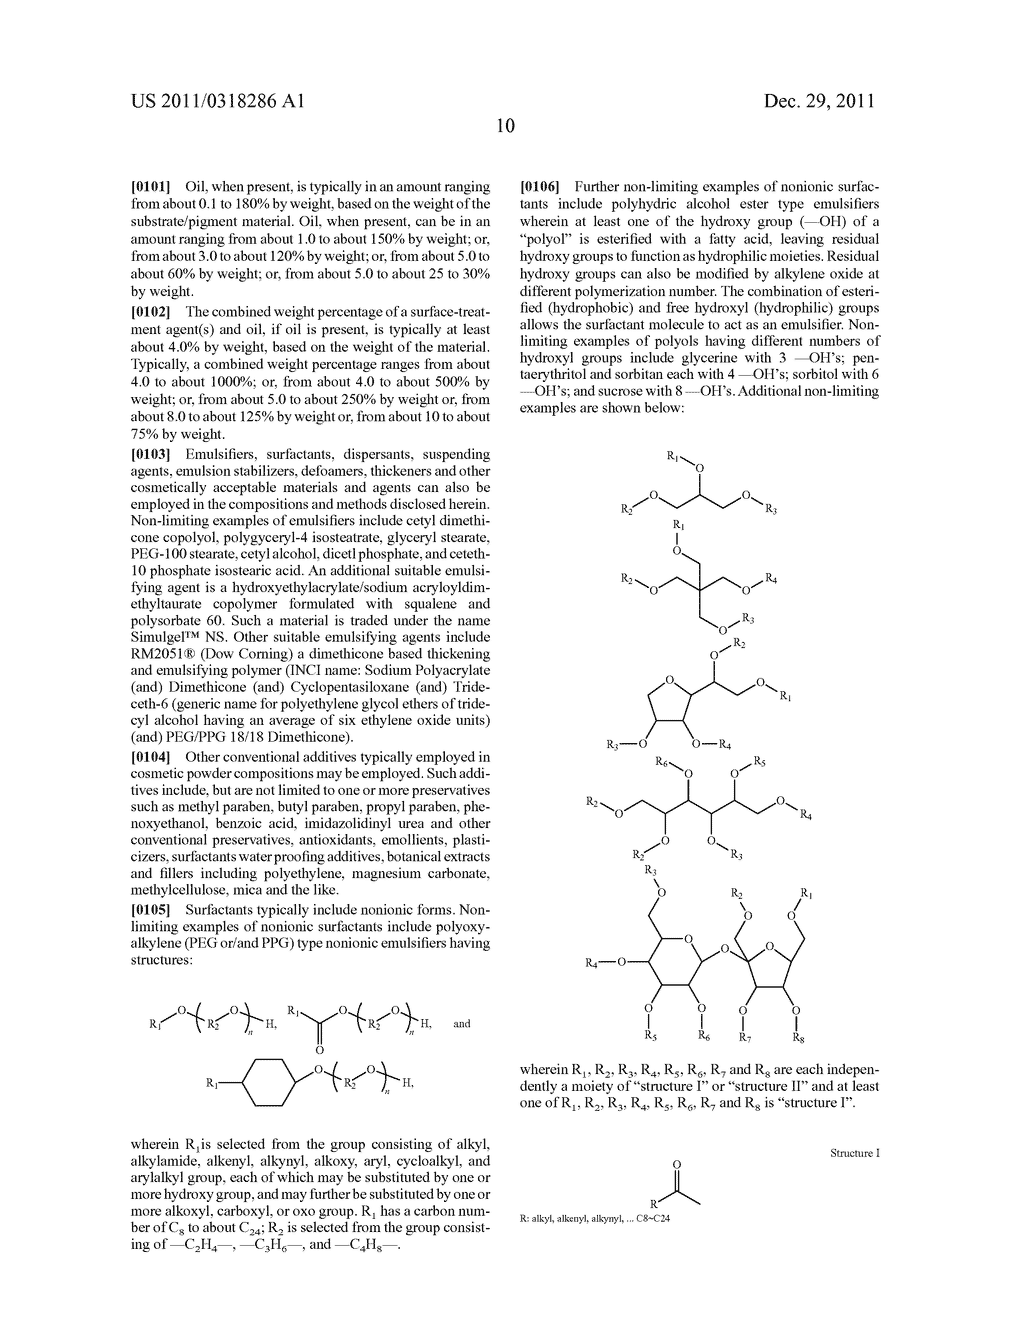 SPF ENHANCED EXTENDED COLOR BULK POWDERS AND METHODS OF MAKING THEREOF - diagram, schematic, and image 22